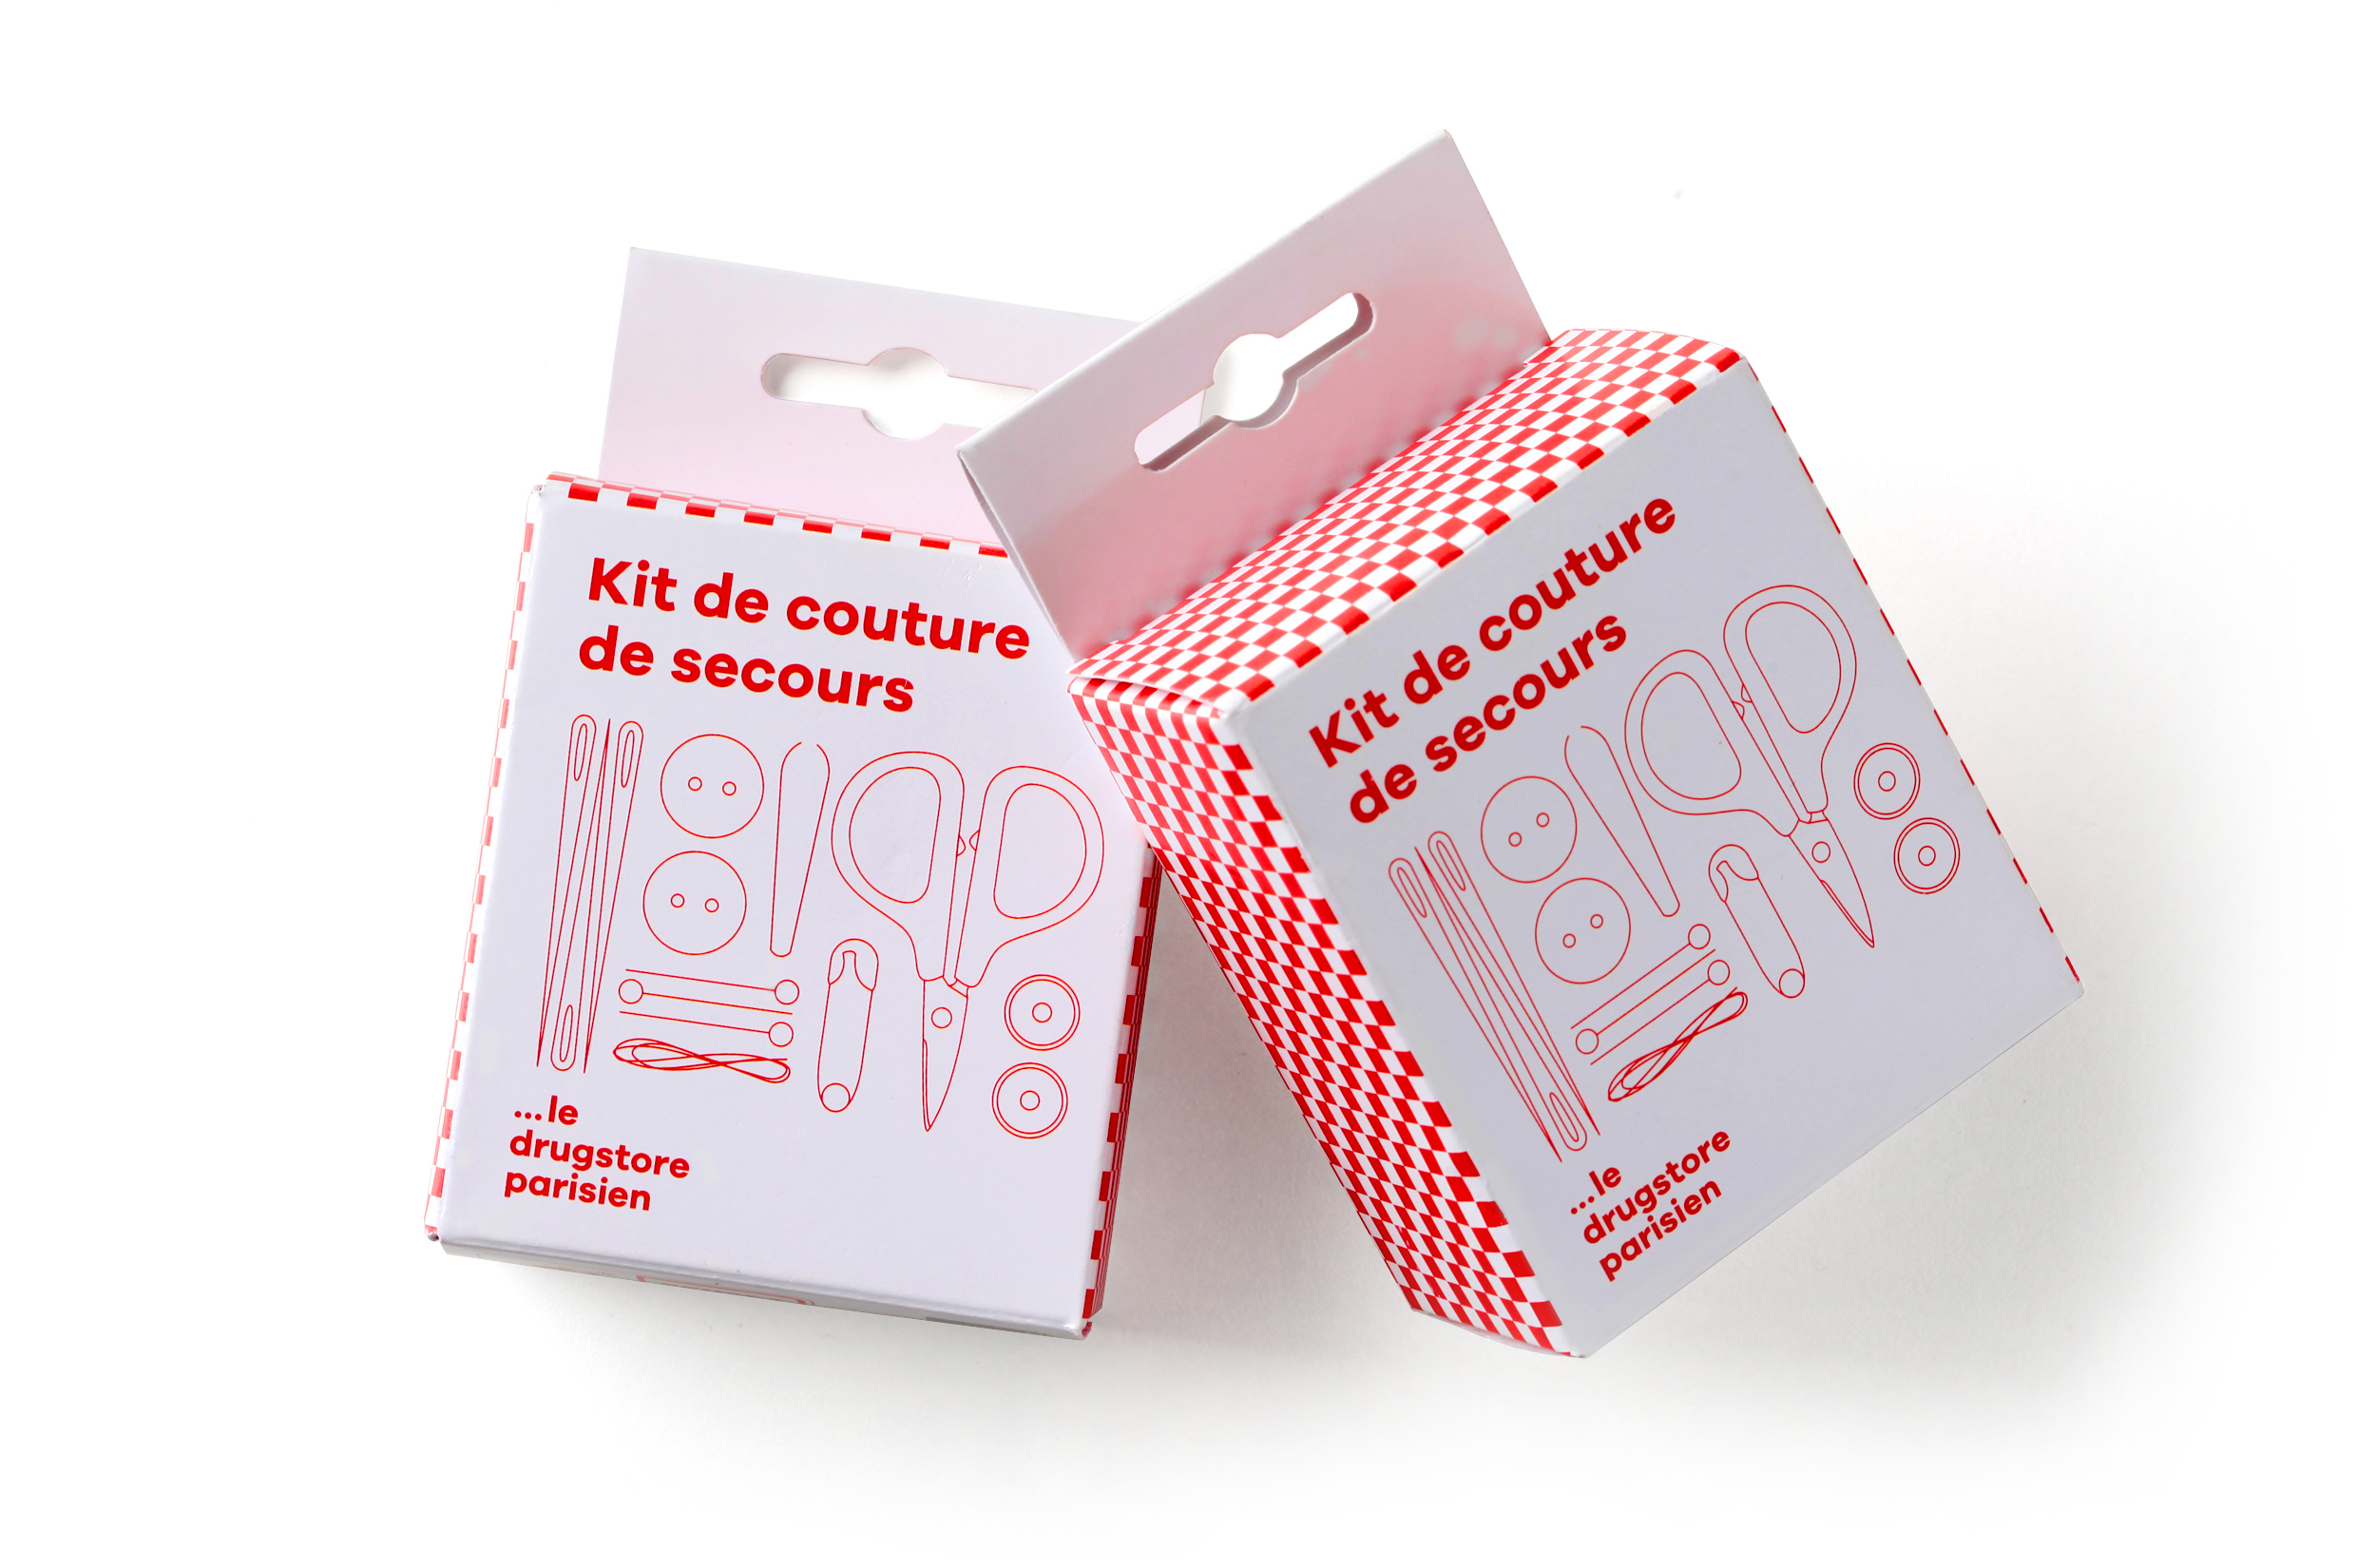 300 packagings à la marque Drugstore - 3